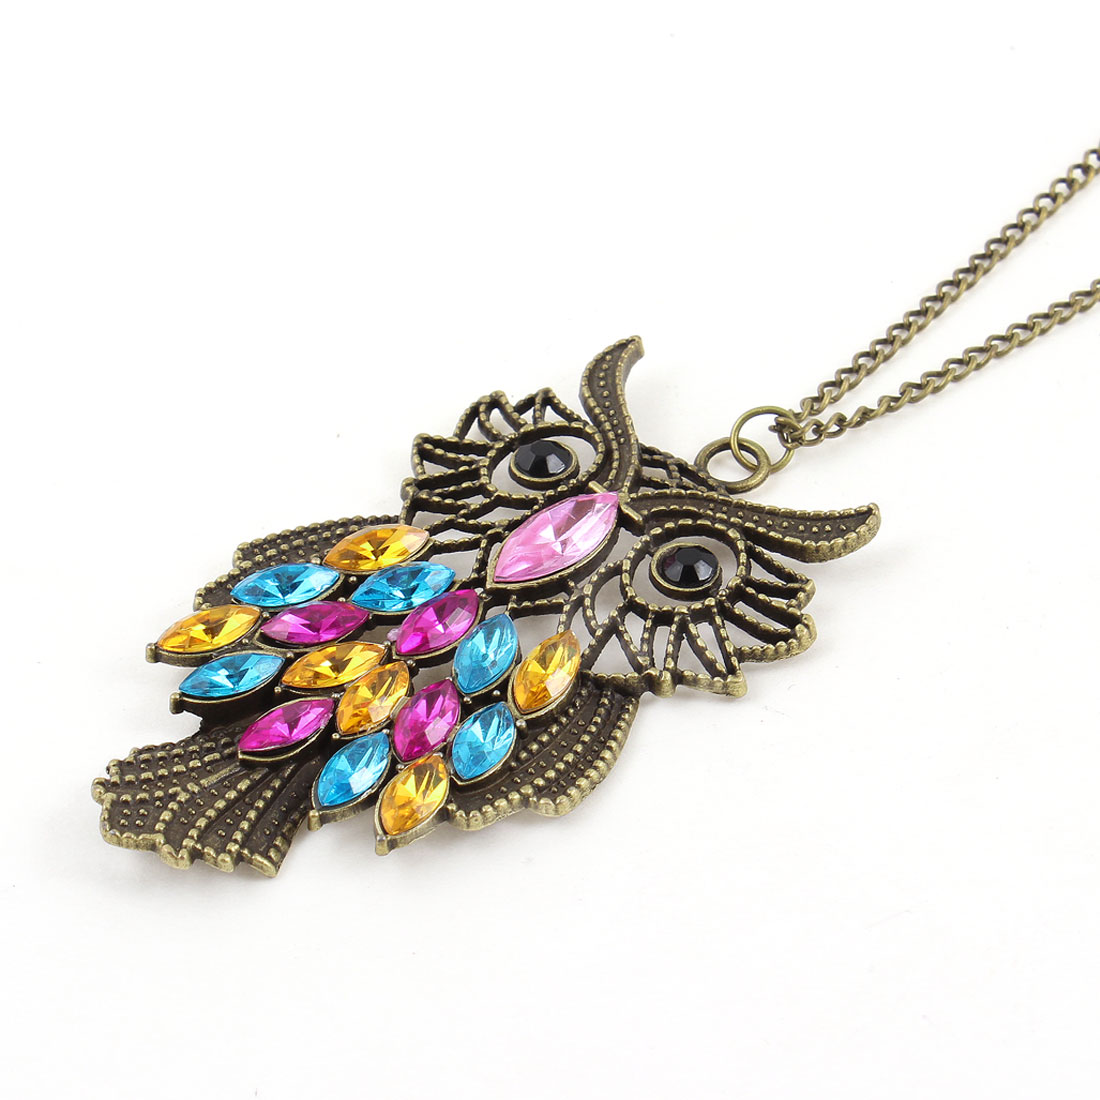 Bronze Tone Lobster Clasp Colorful Beads Owl Ornament Pendant Necklace for Women